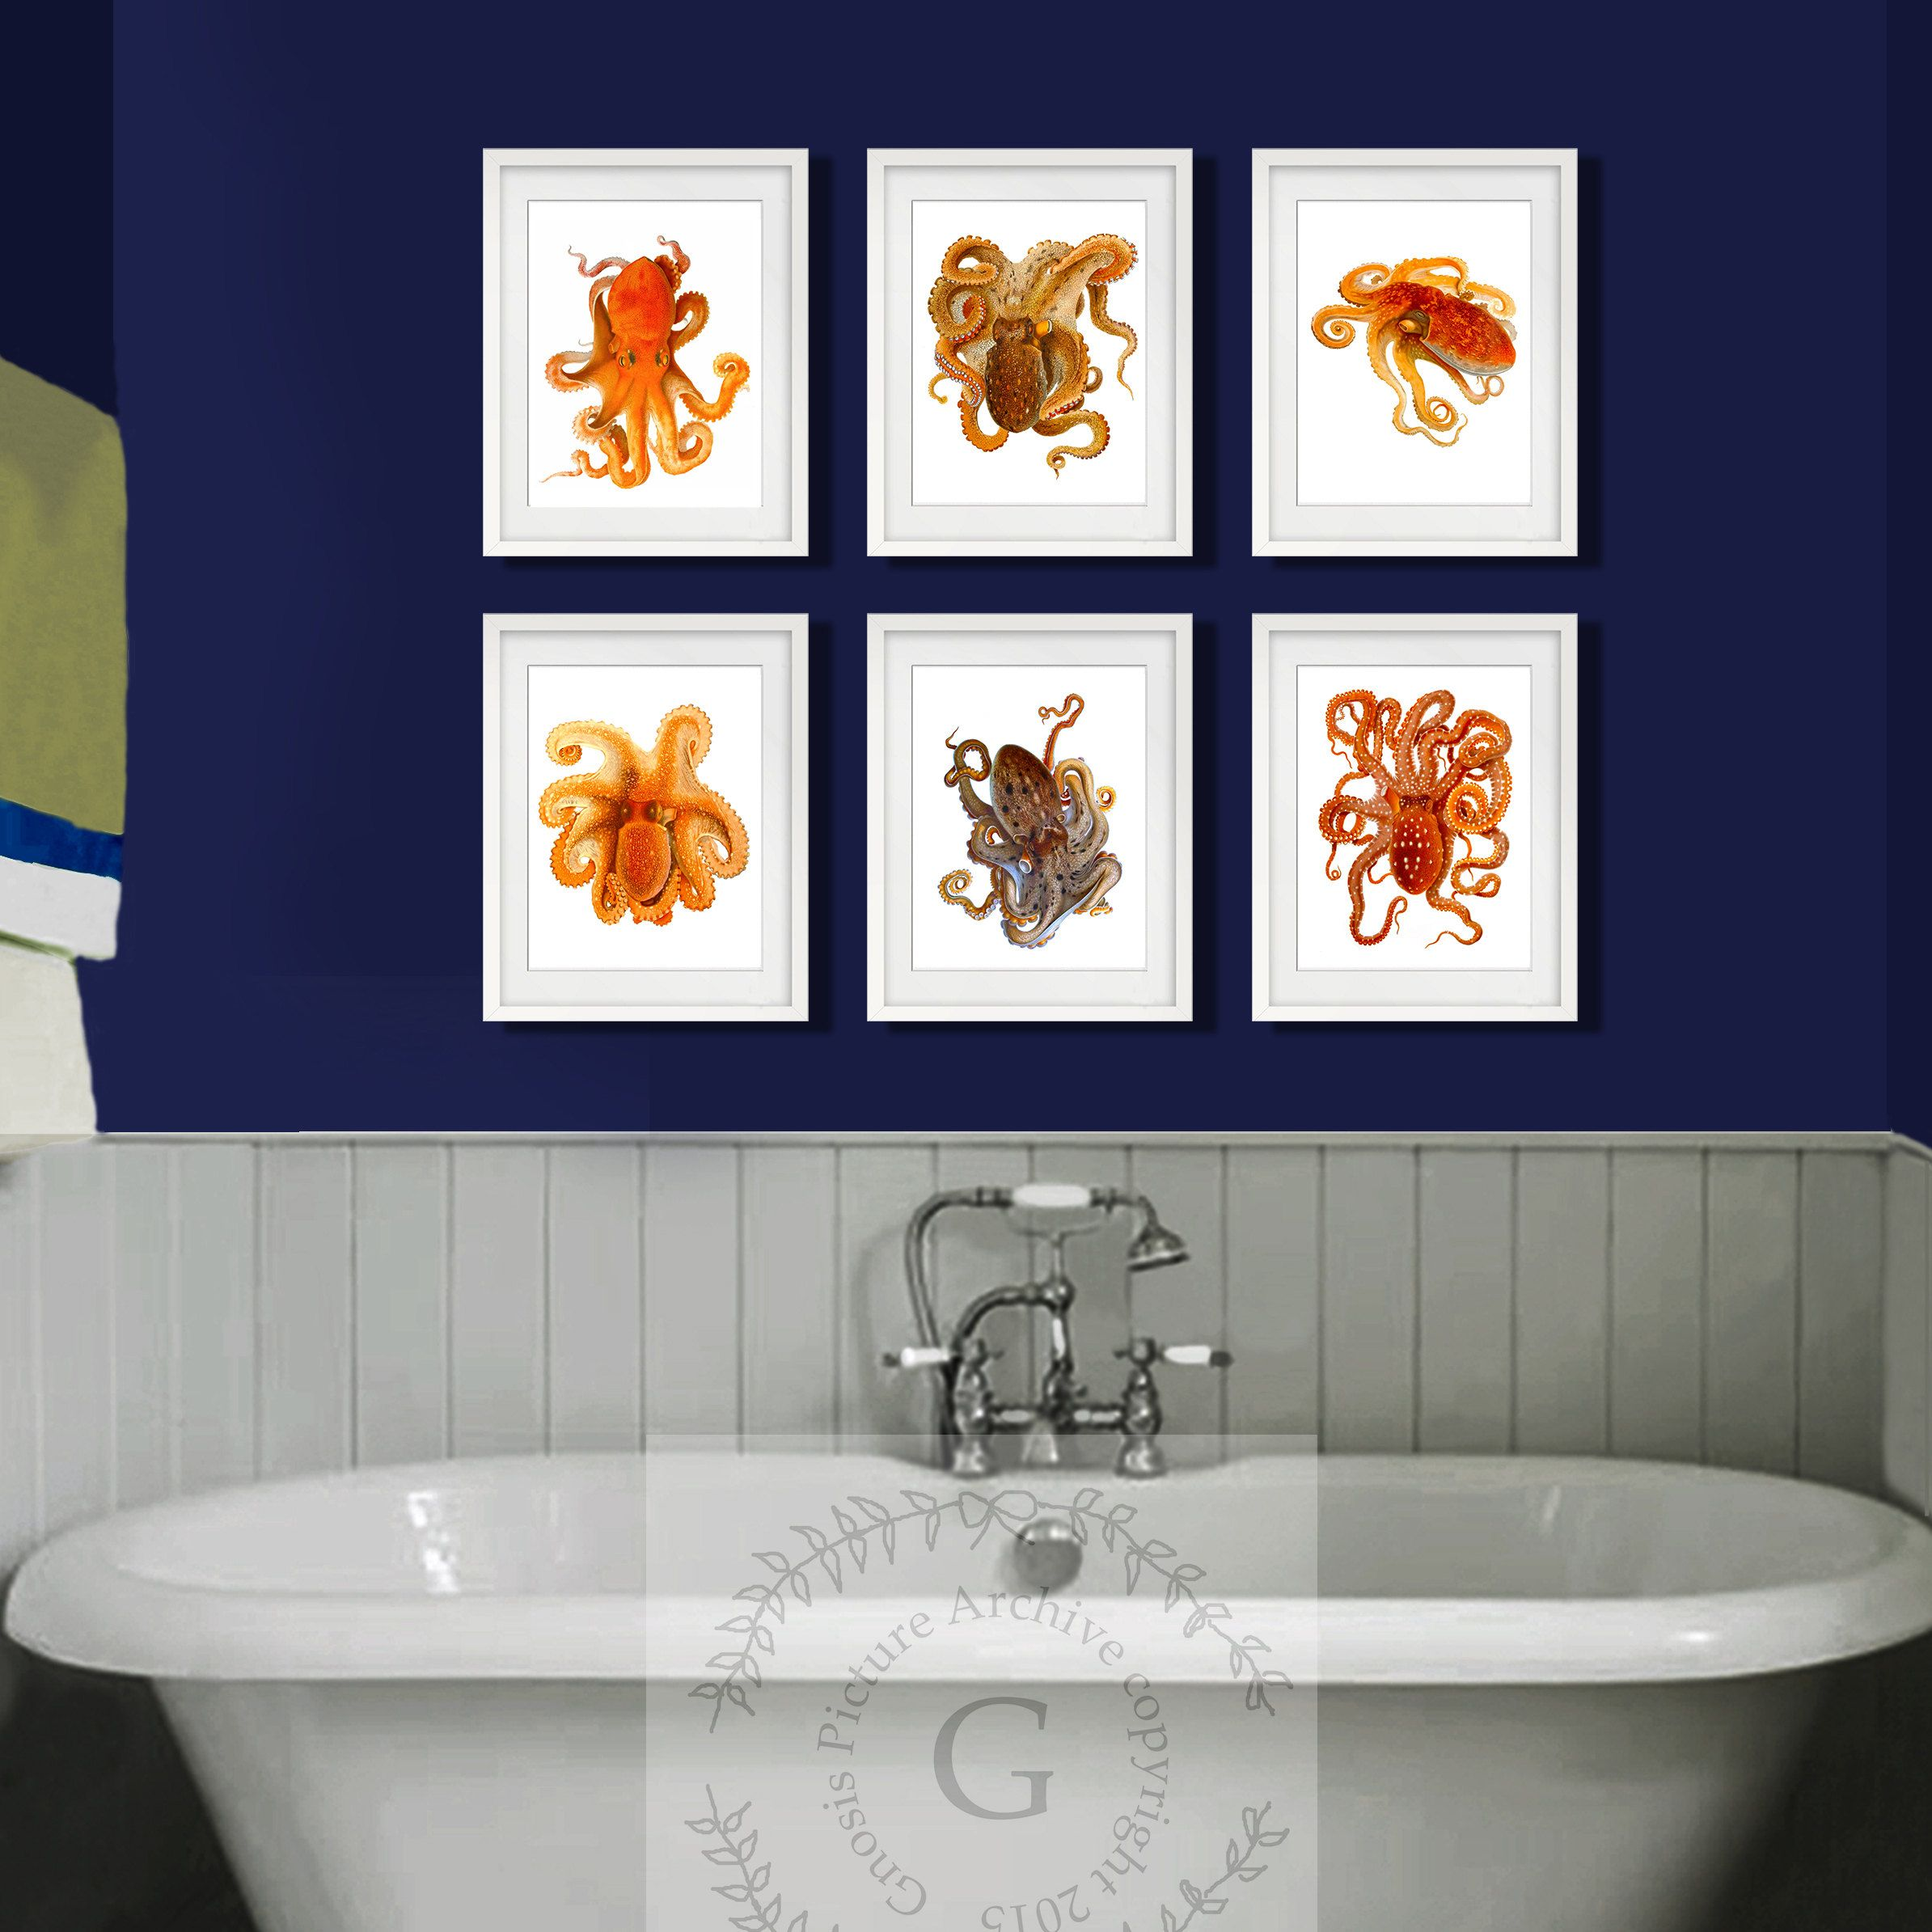 Aktion Gegen Langweilige Badezimmer Gnosis Picture Archive Wall Art Print Get Beautiful Wall Decor